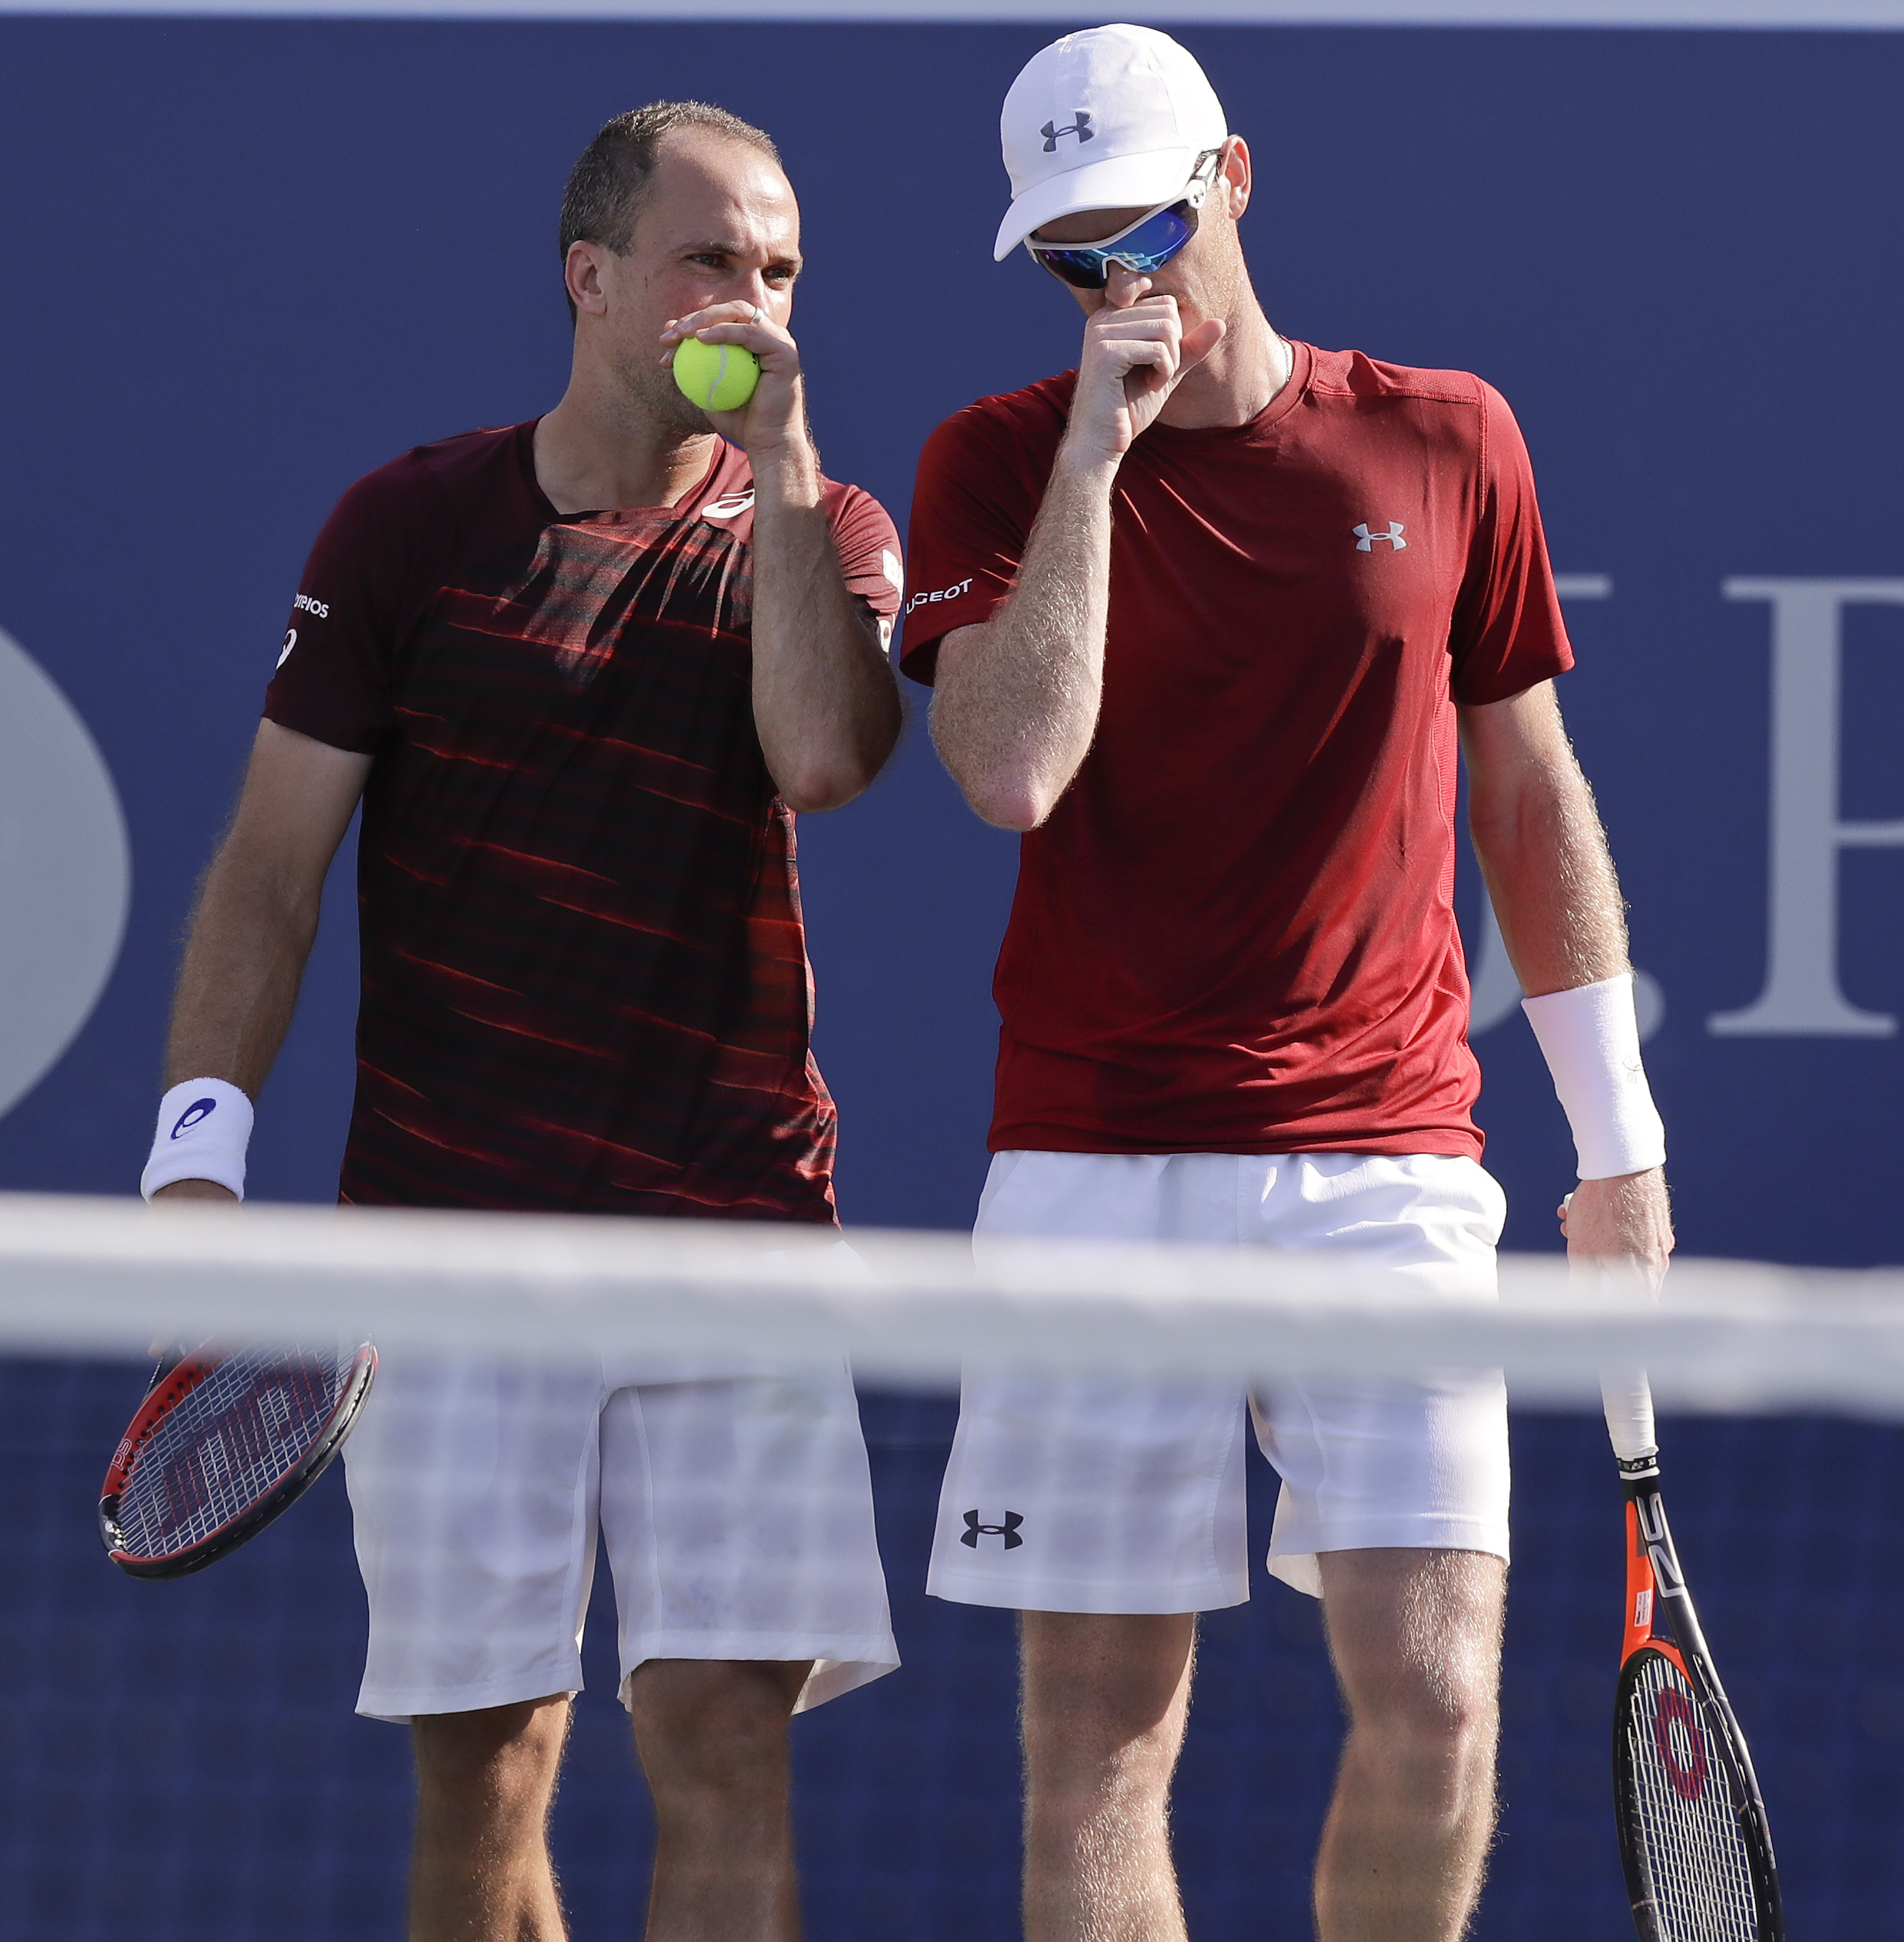 Bruno Soares, of Brazil, left, talks with doubles partner Jamie Murray, of the United Kingdom, during the men's doubles semifinals against Pierre-Hugues Herbert, of France, and Nicolas Mahut, of France, at the U.S. Open tennis tournament, Thursday, Sept.